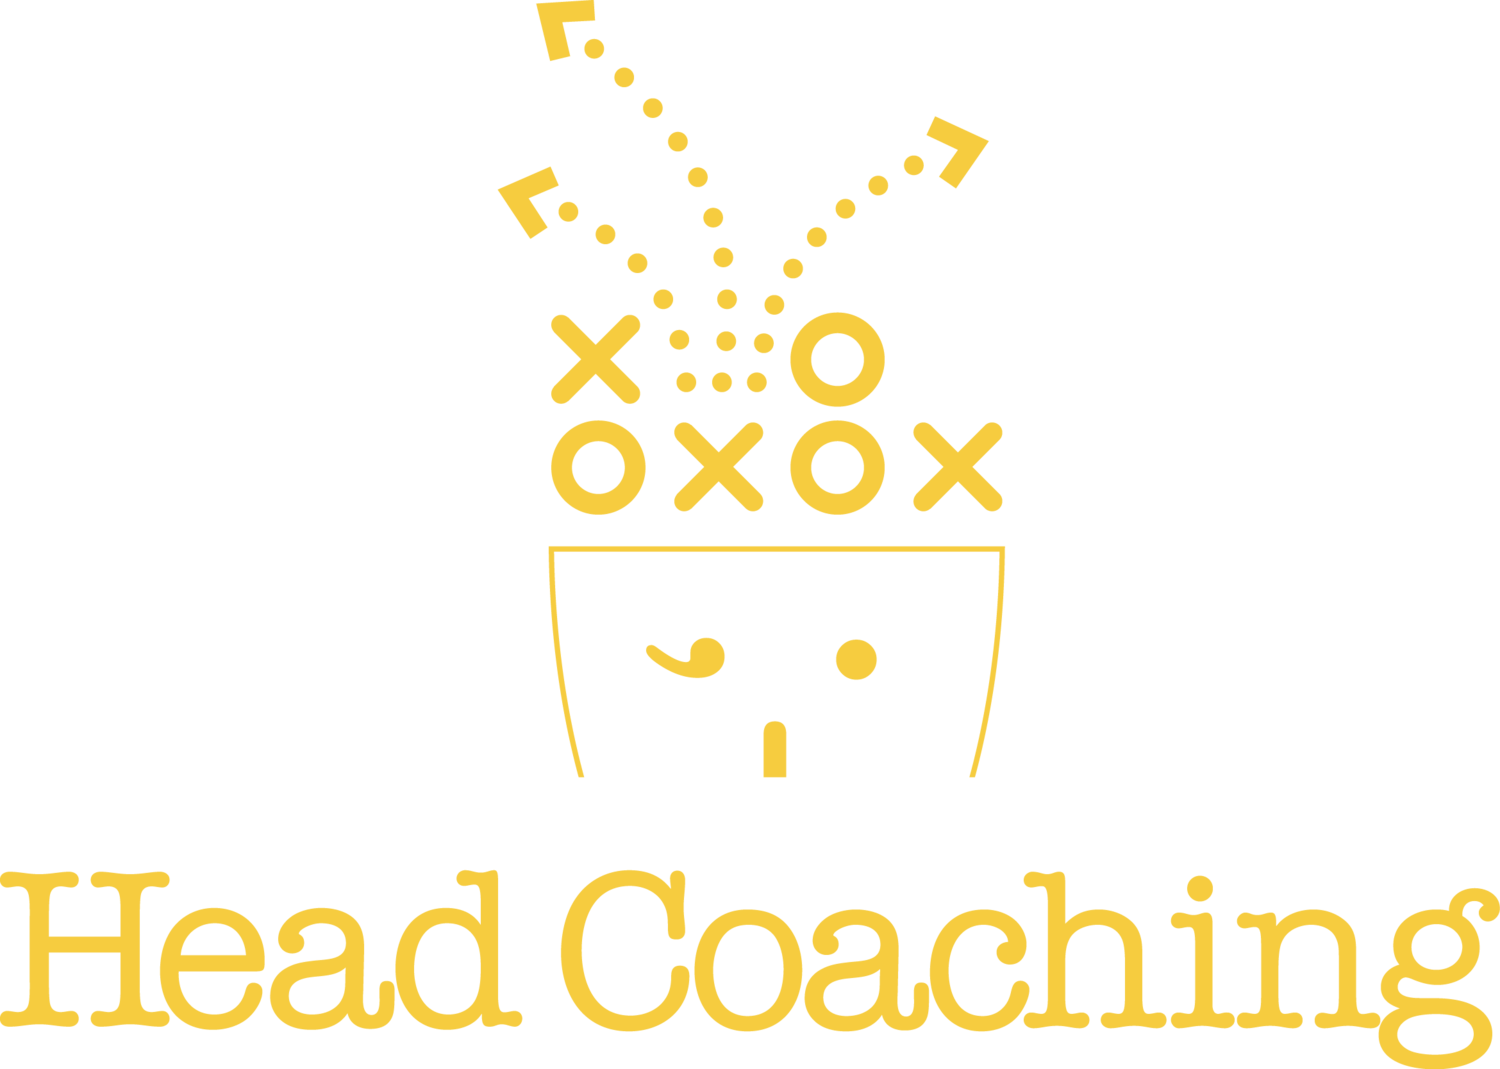 Head Coaching – A psychological approach to winning at your sport